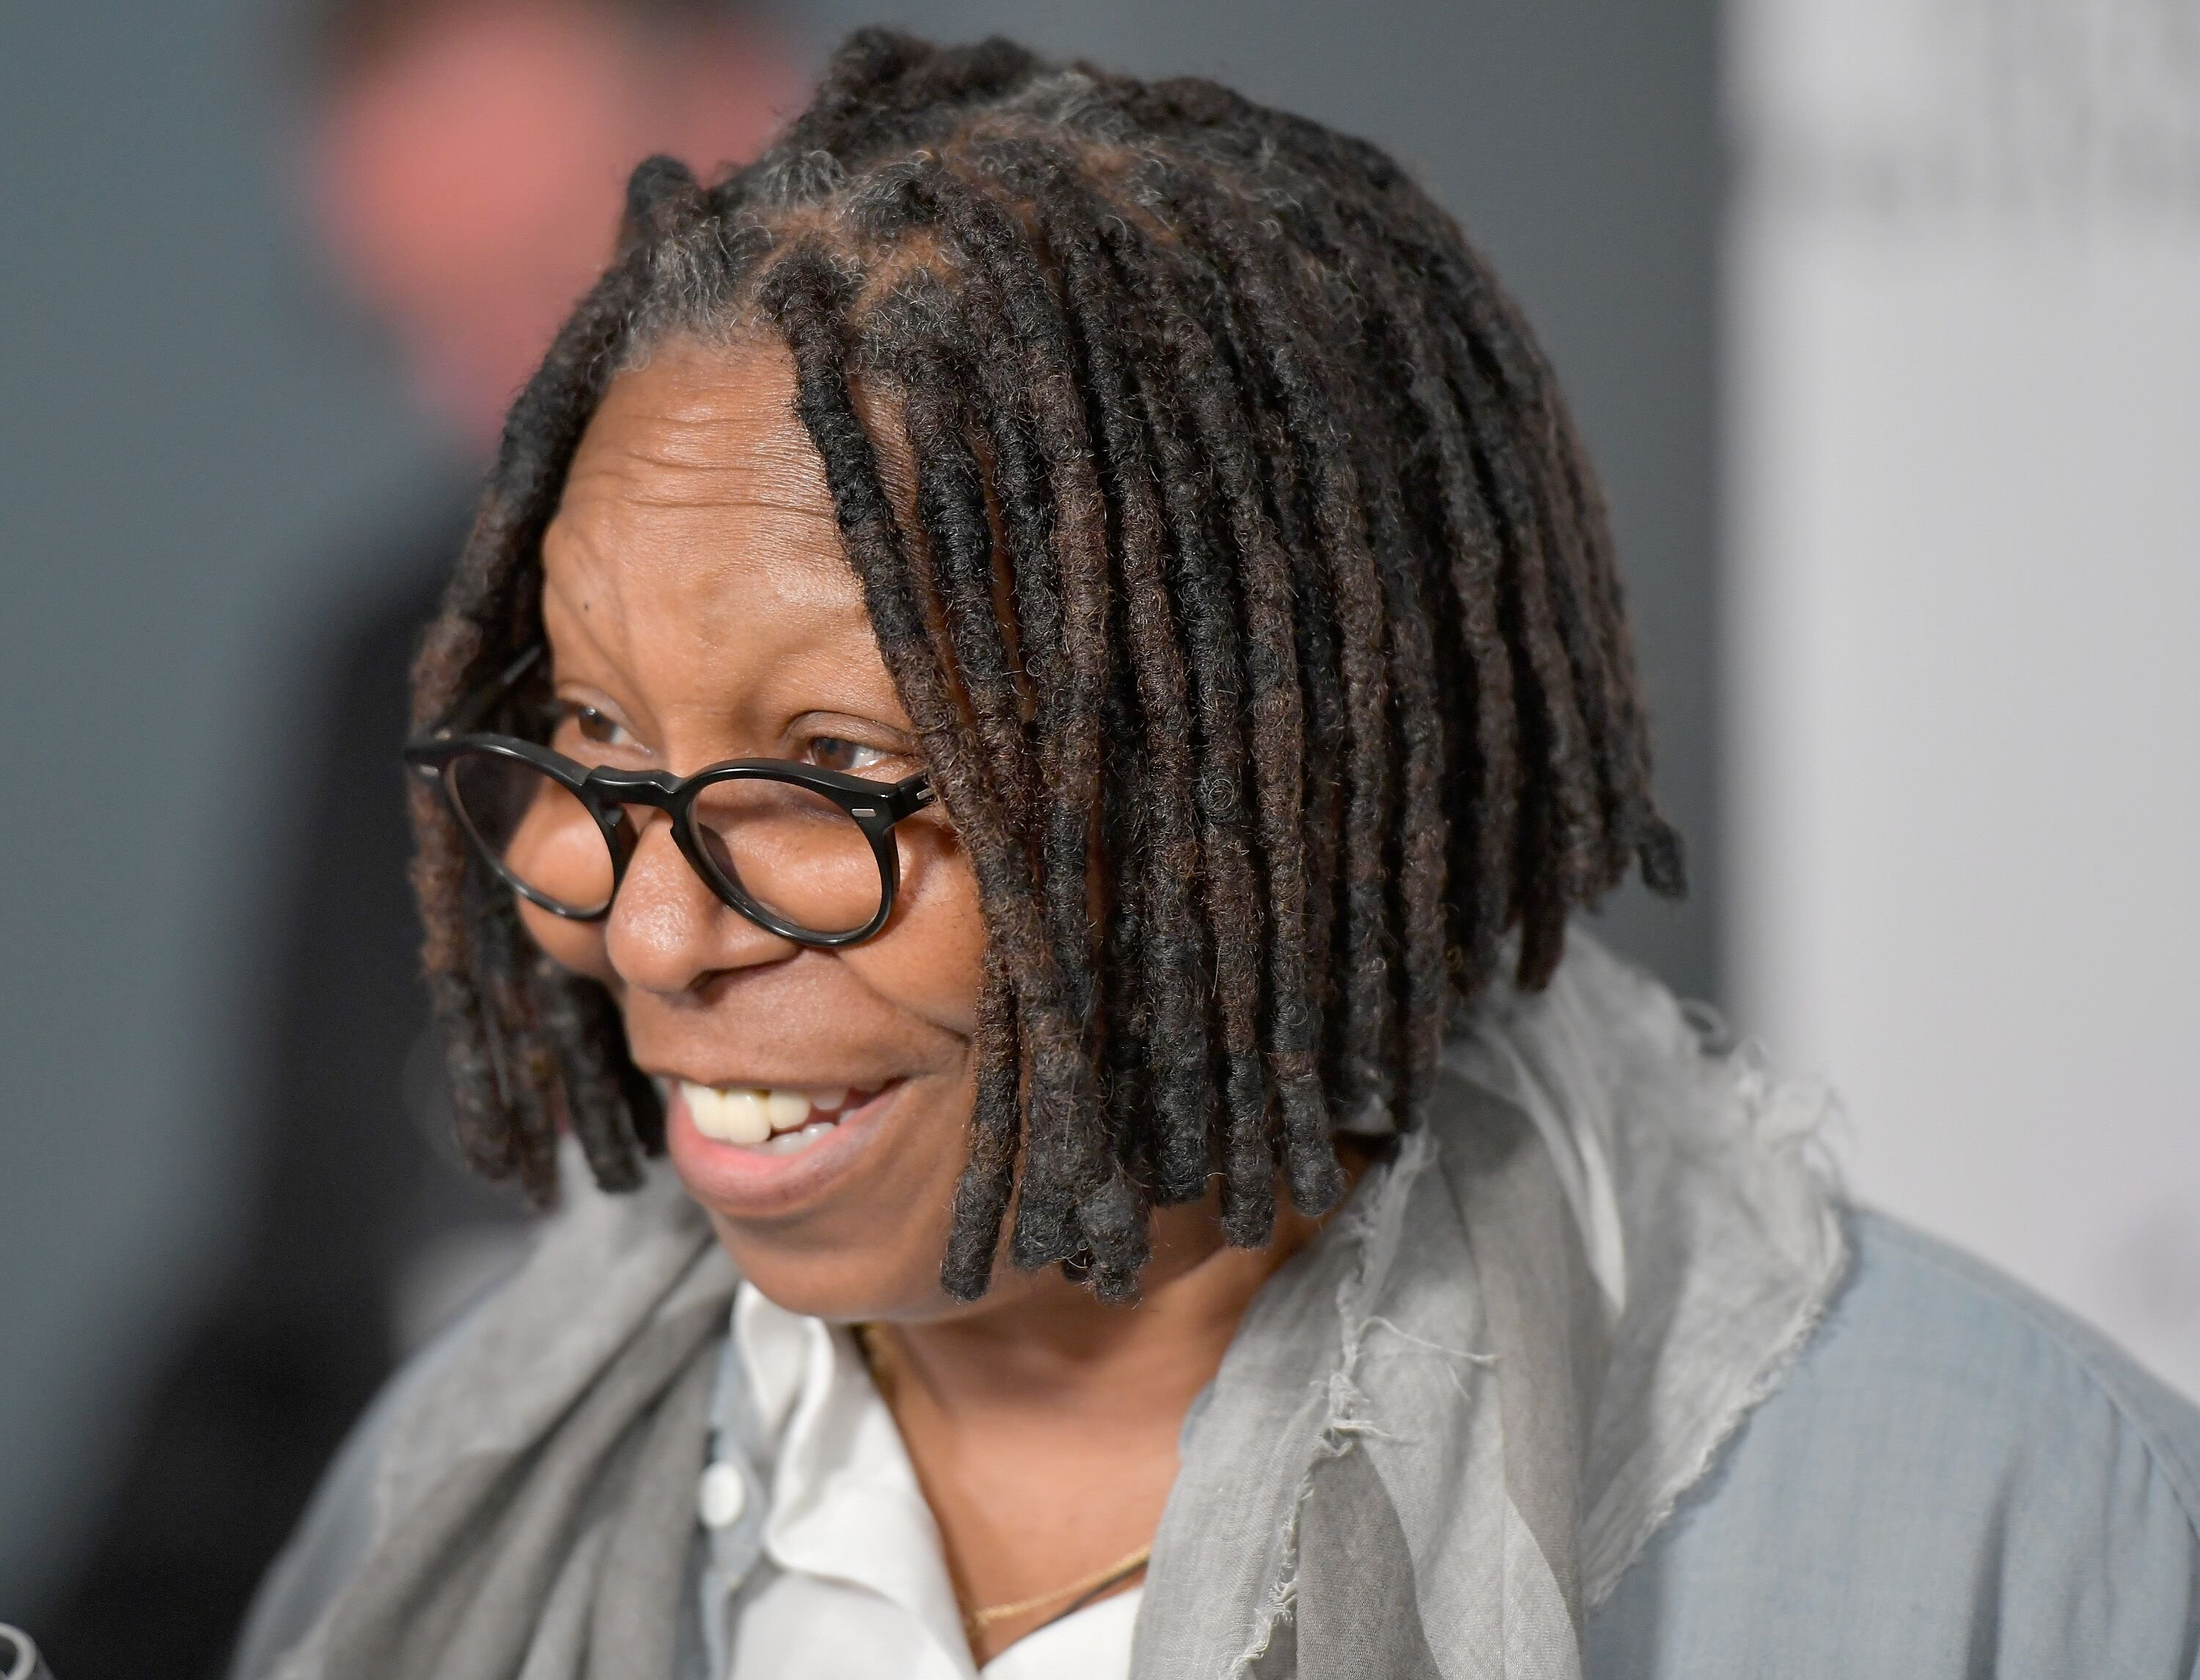 Host, actress Whoopi Goldberg, speaks at Chicken Coupe during Food Network & Cooking Channel New York City Wine & Food Festival presented by FOOD & WINE at The Loeb Boathouse | Photo: Getty Images